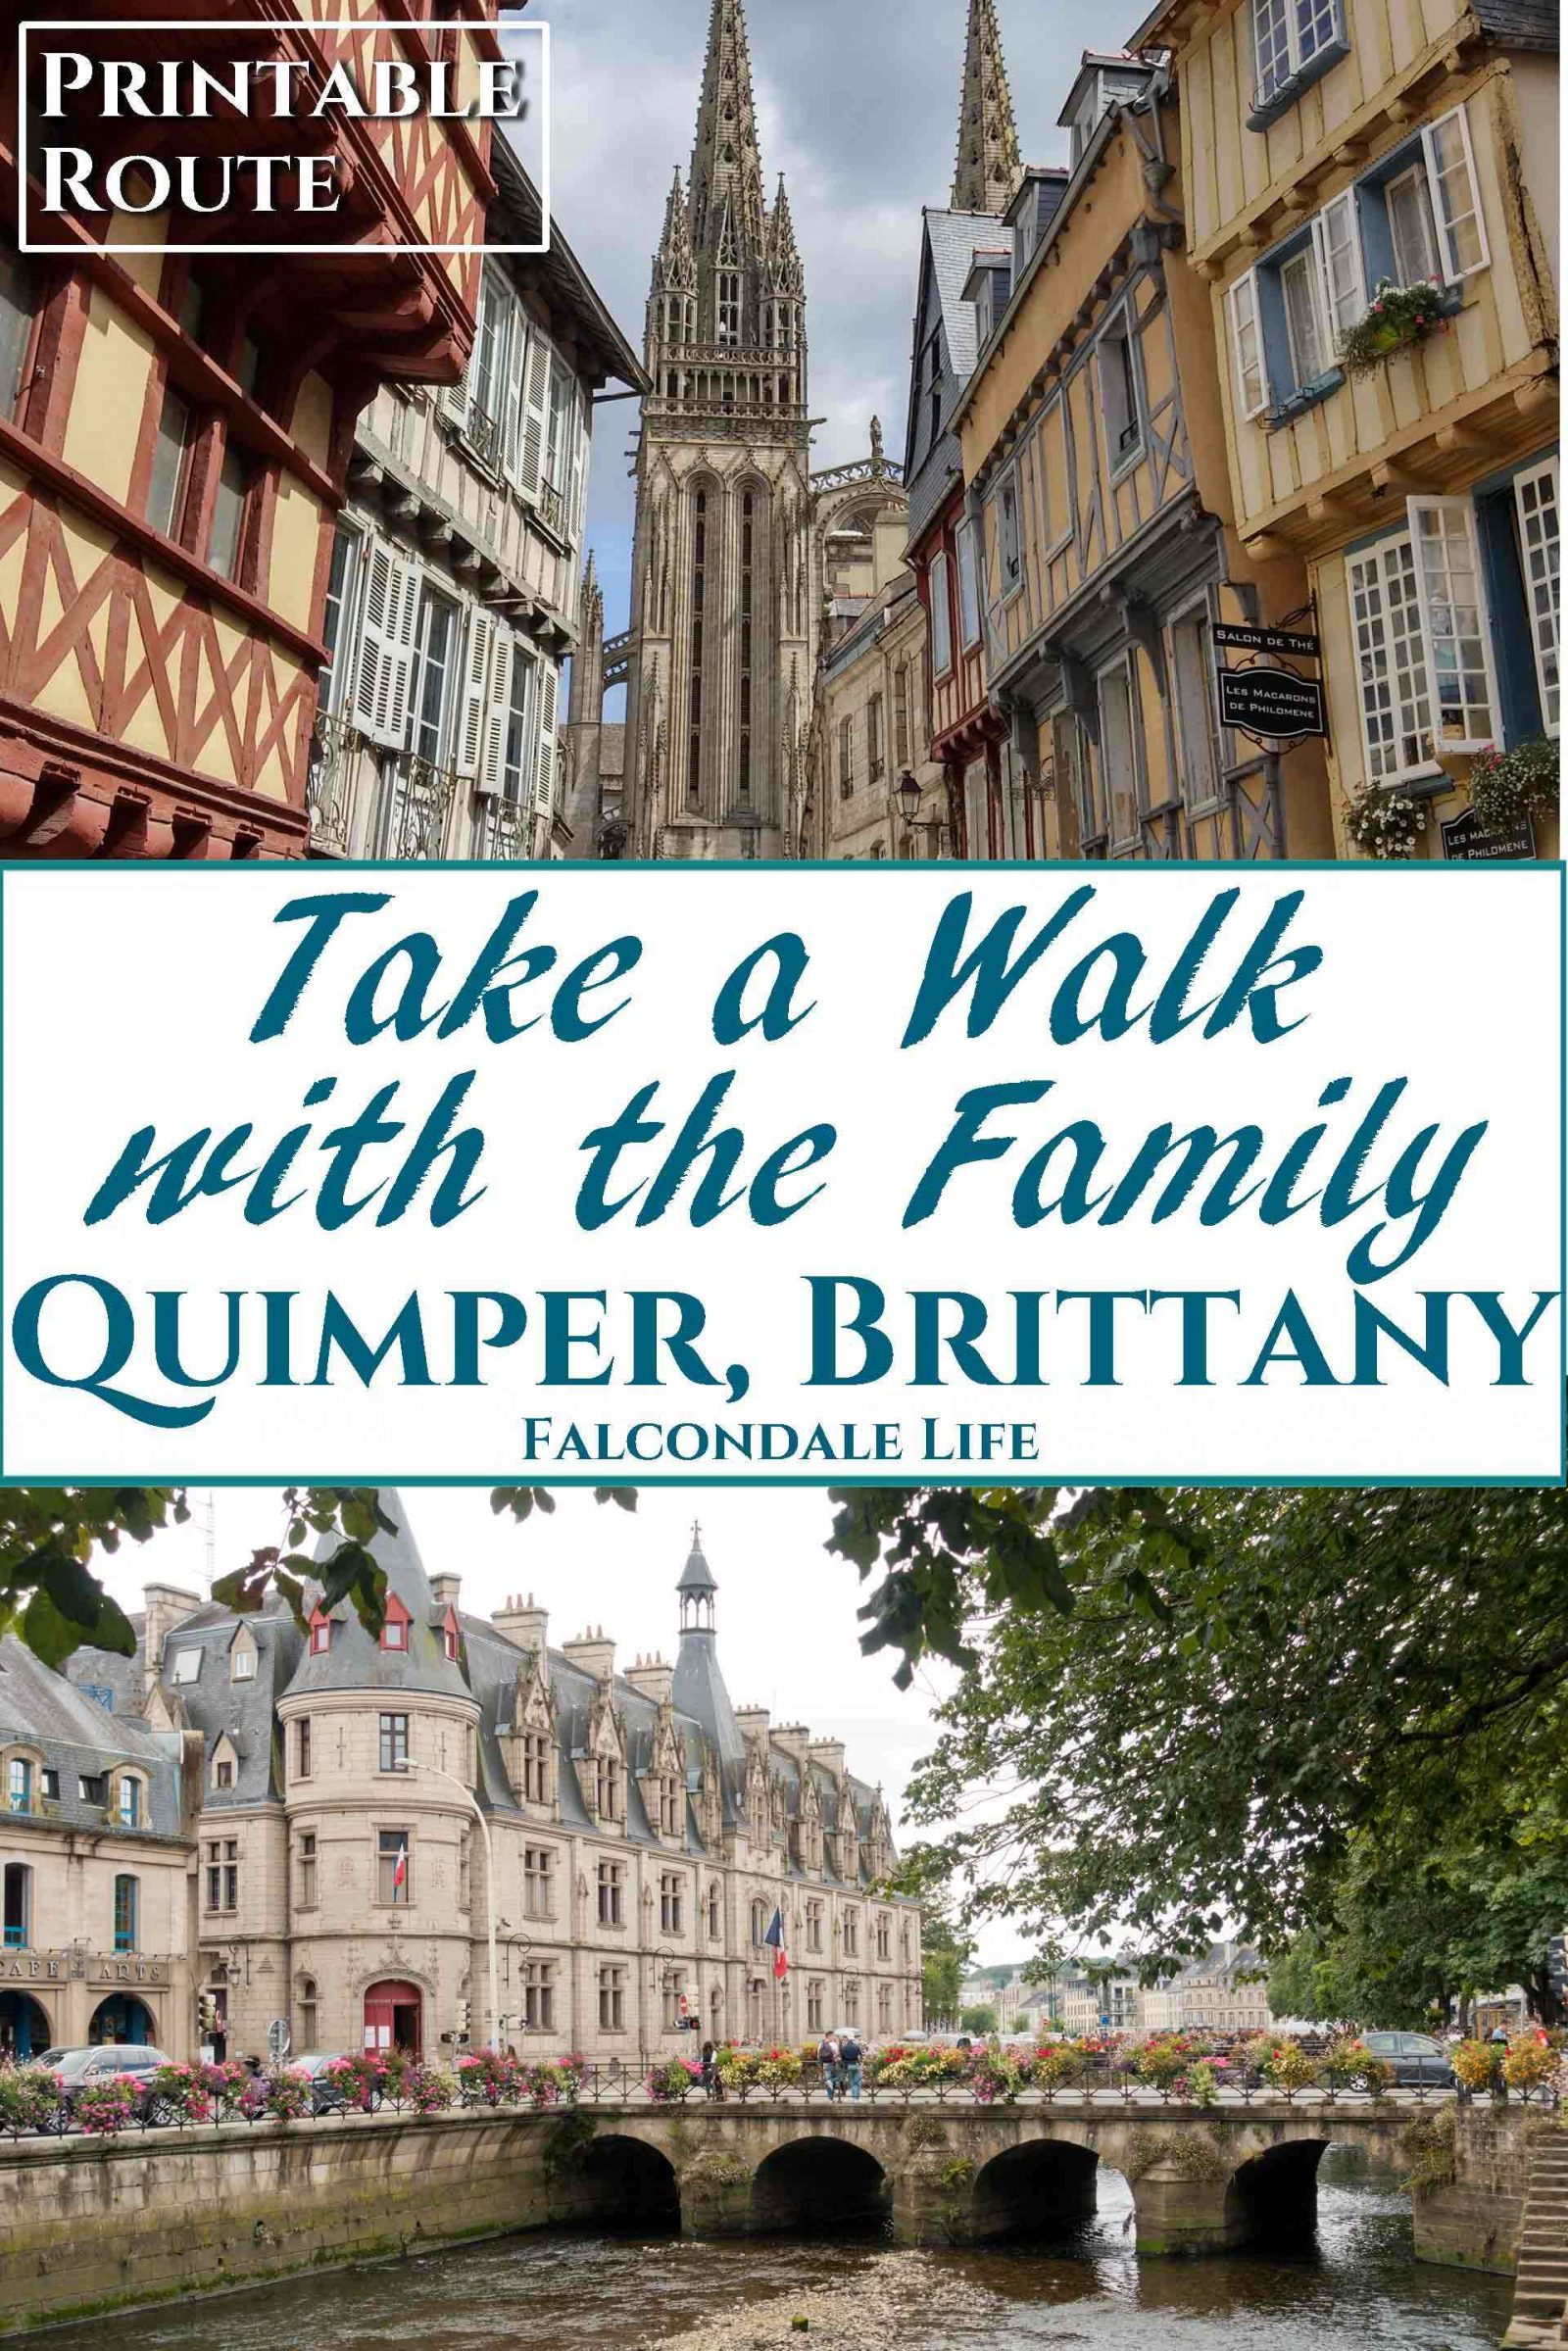 Take a Walk with the Family through Quimper, Brittany on Falcondale Life blog. A walking route with children through the picturesque old Breton city of Quimper. A short walk with beautiful photographs and detailed directions. Family friendly French holiday information. Visit website for free walking route printable.